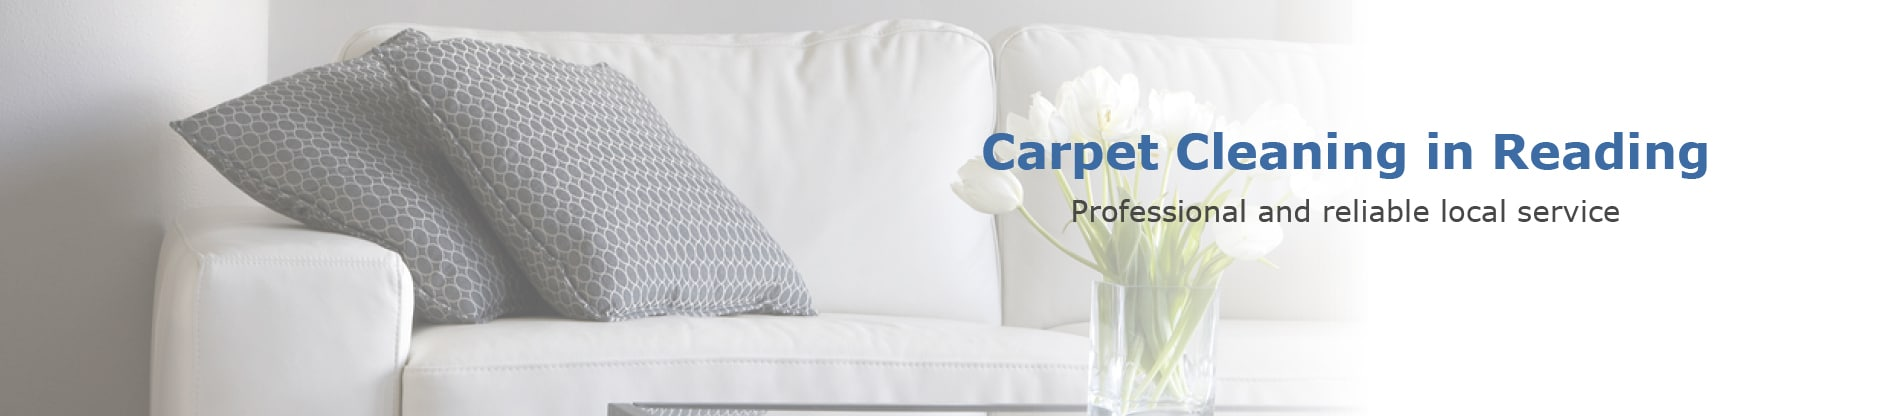 Carpet Cleaning in Reading